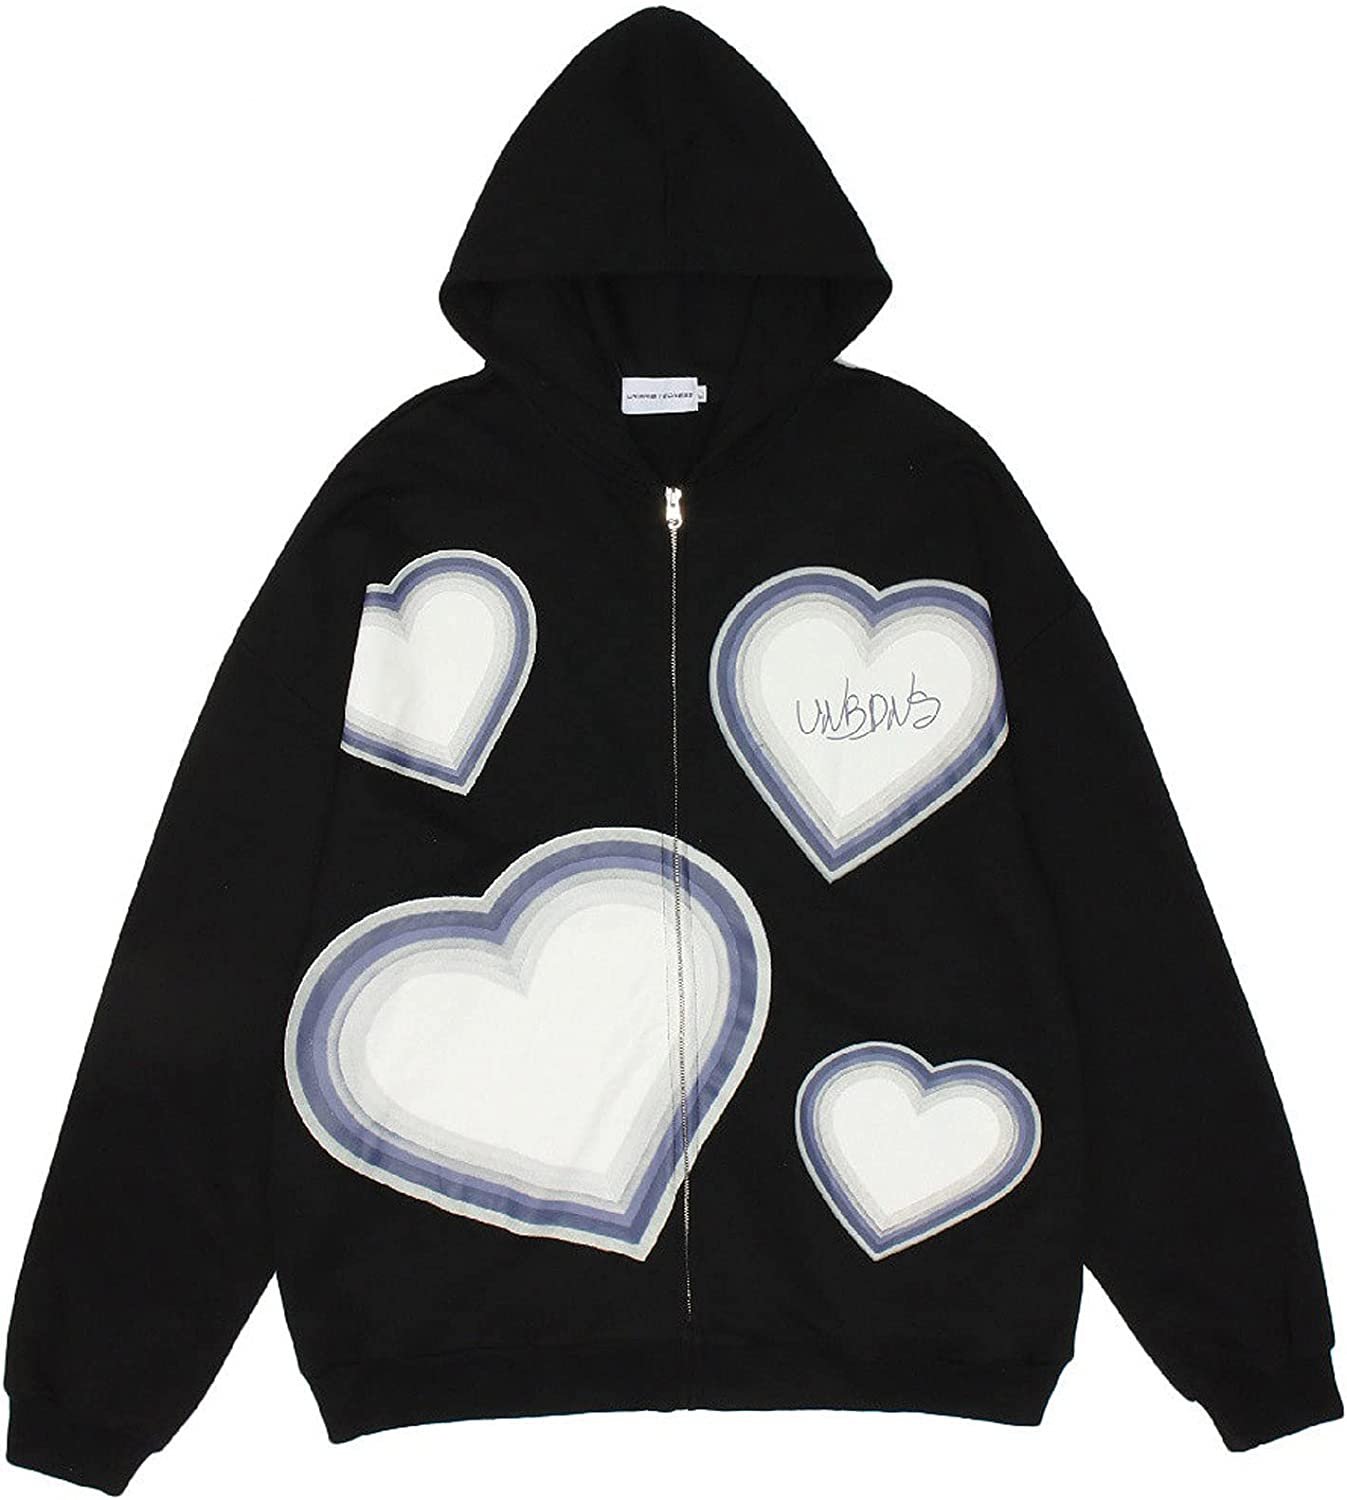 Max 62% OFF Womens Hoodie Full Zip Long Sleeve Plus Size To Crop All items in the store Sweatshirts